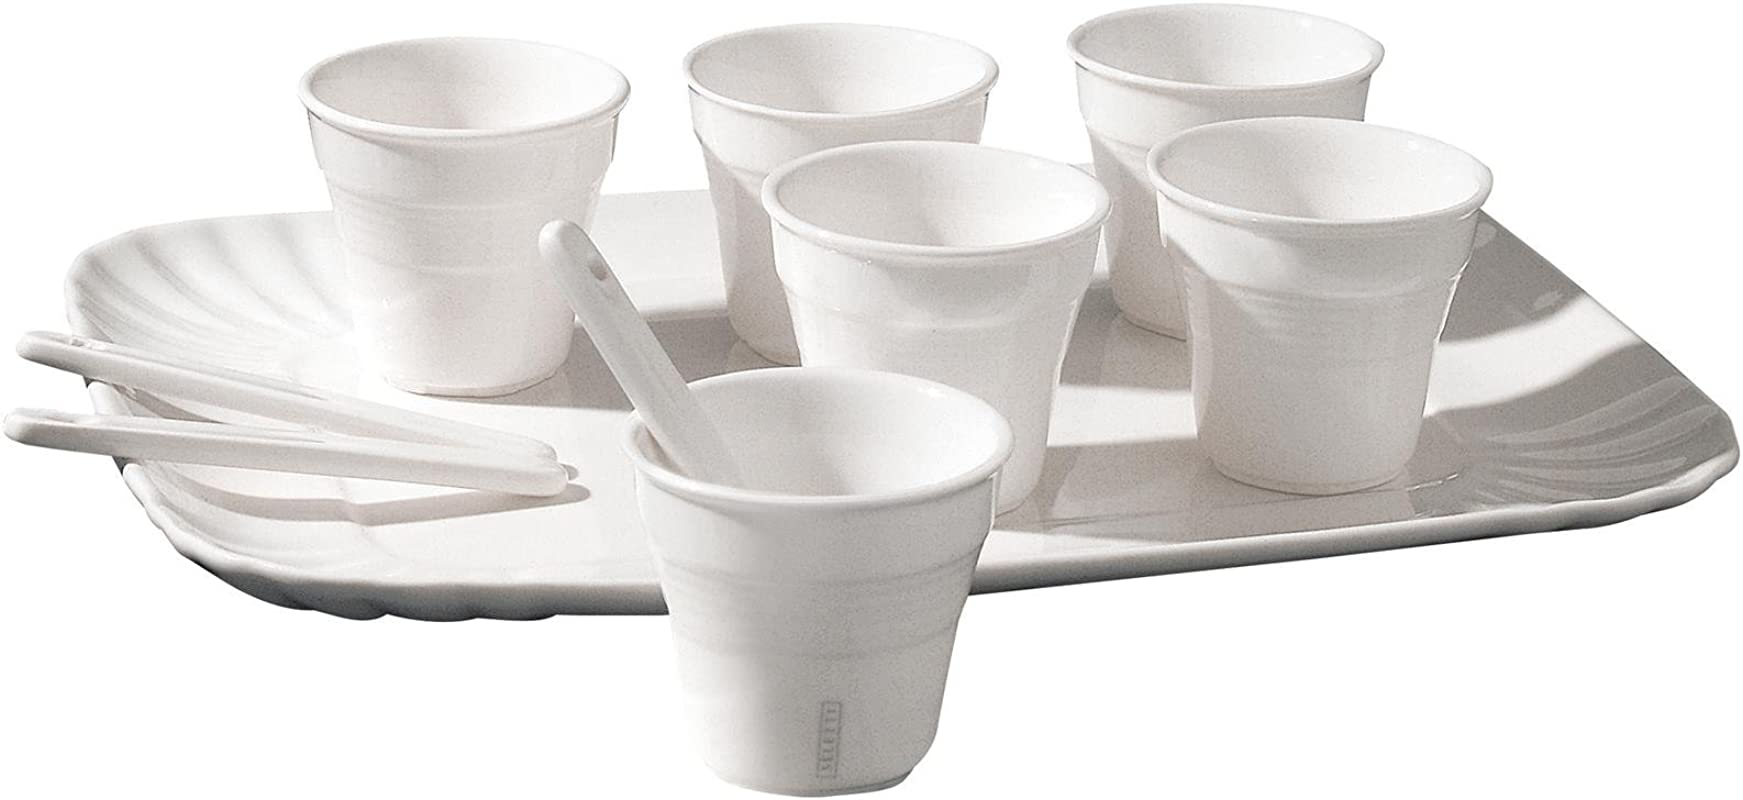 Seletti The Large Coffee Set 13 Ct